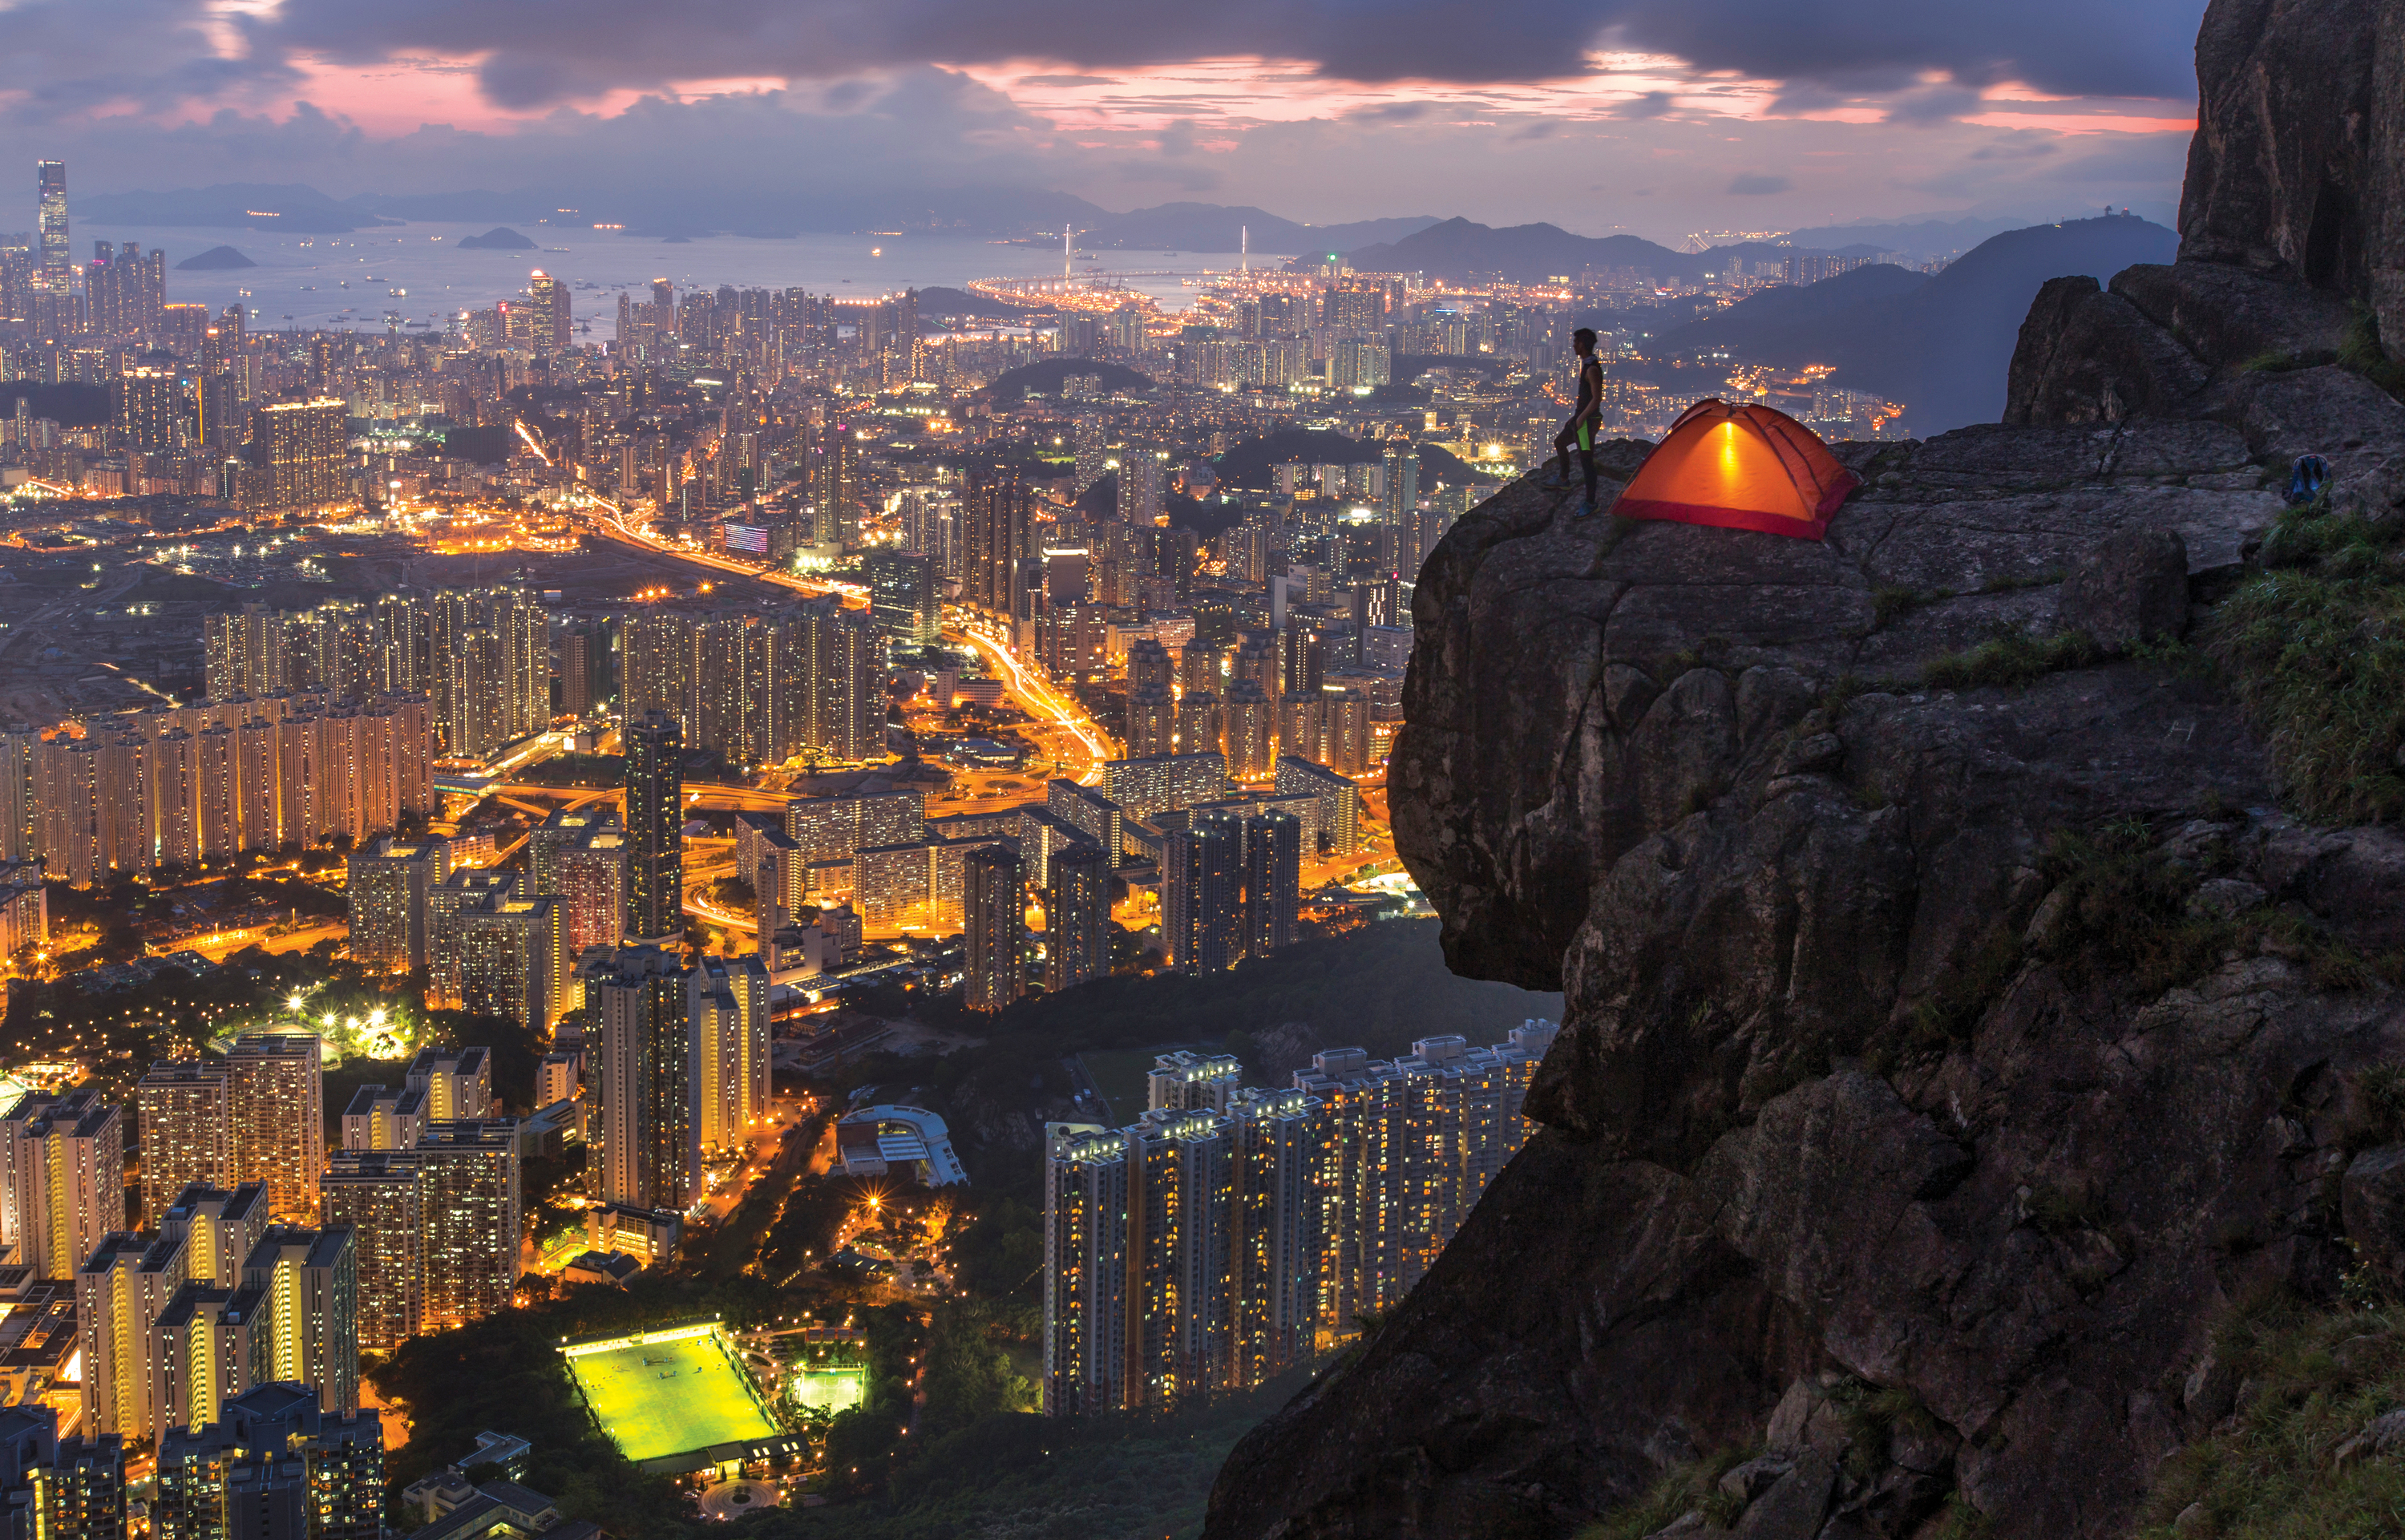 5 best night hikes in Hong Kong